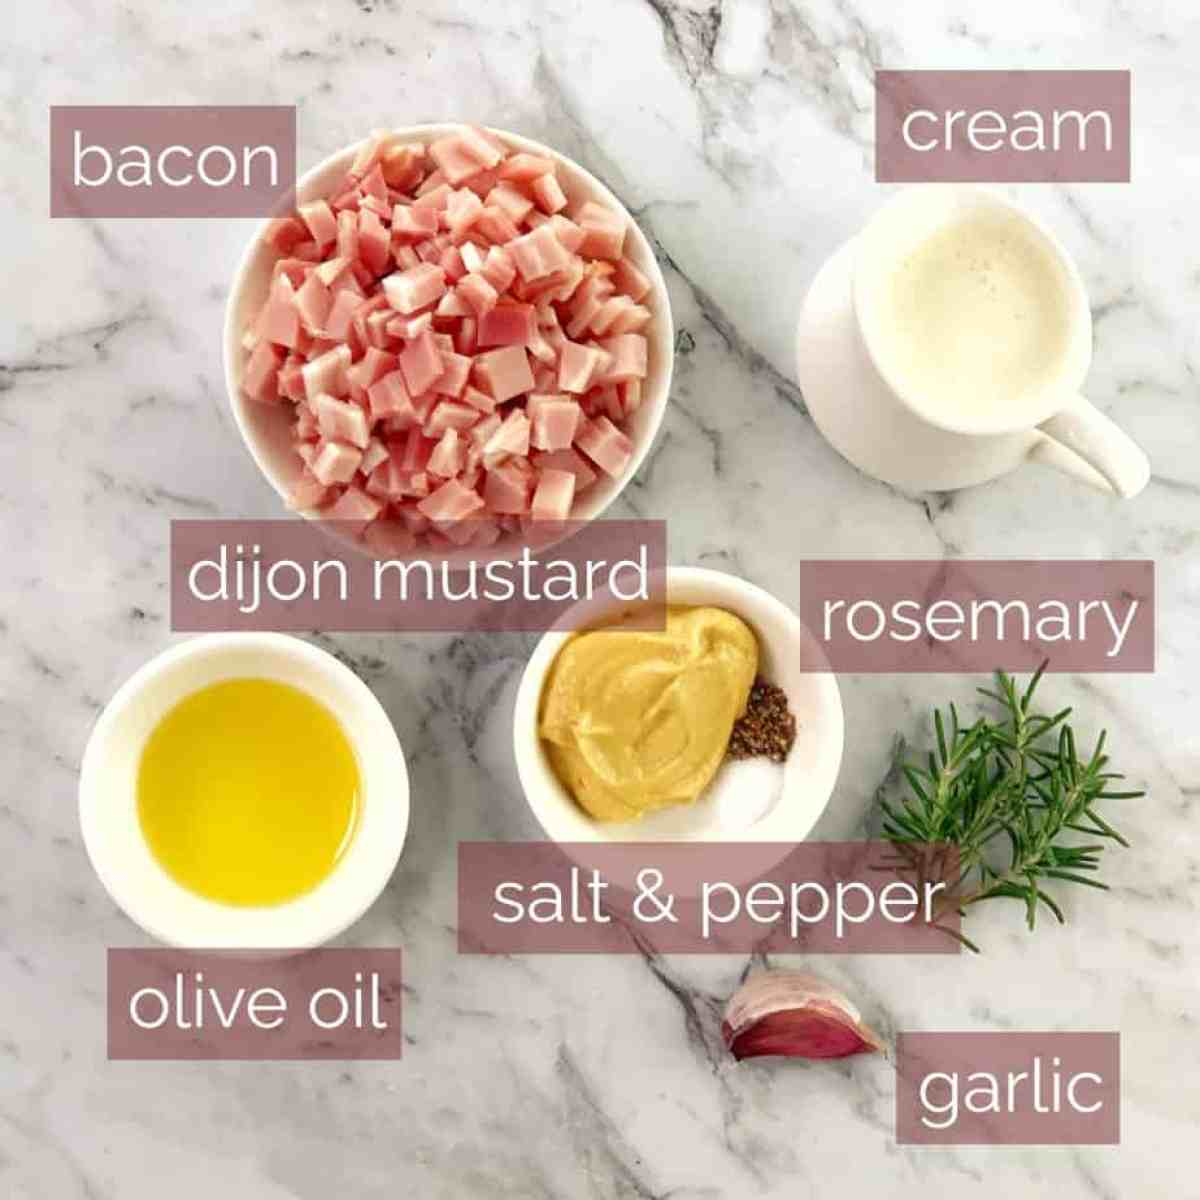 image of ingredients required to make the recipe